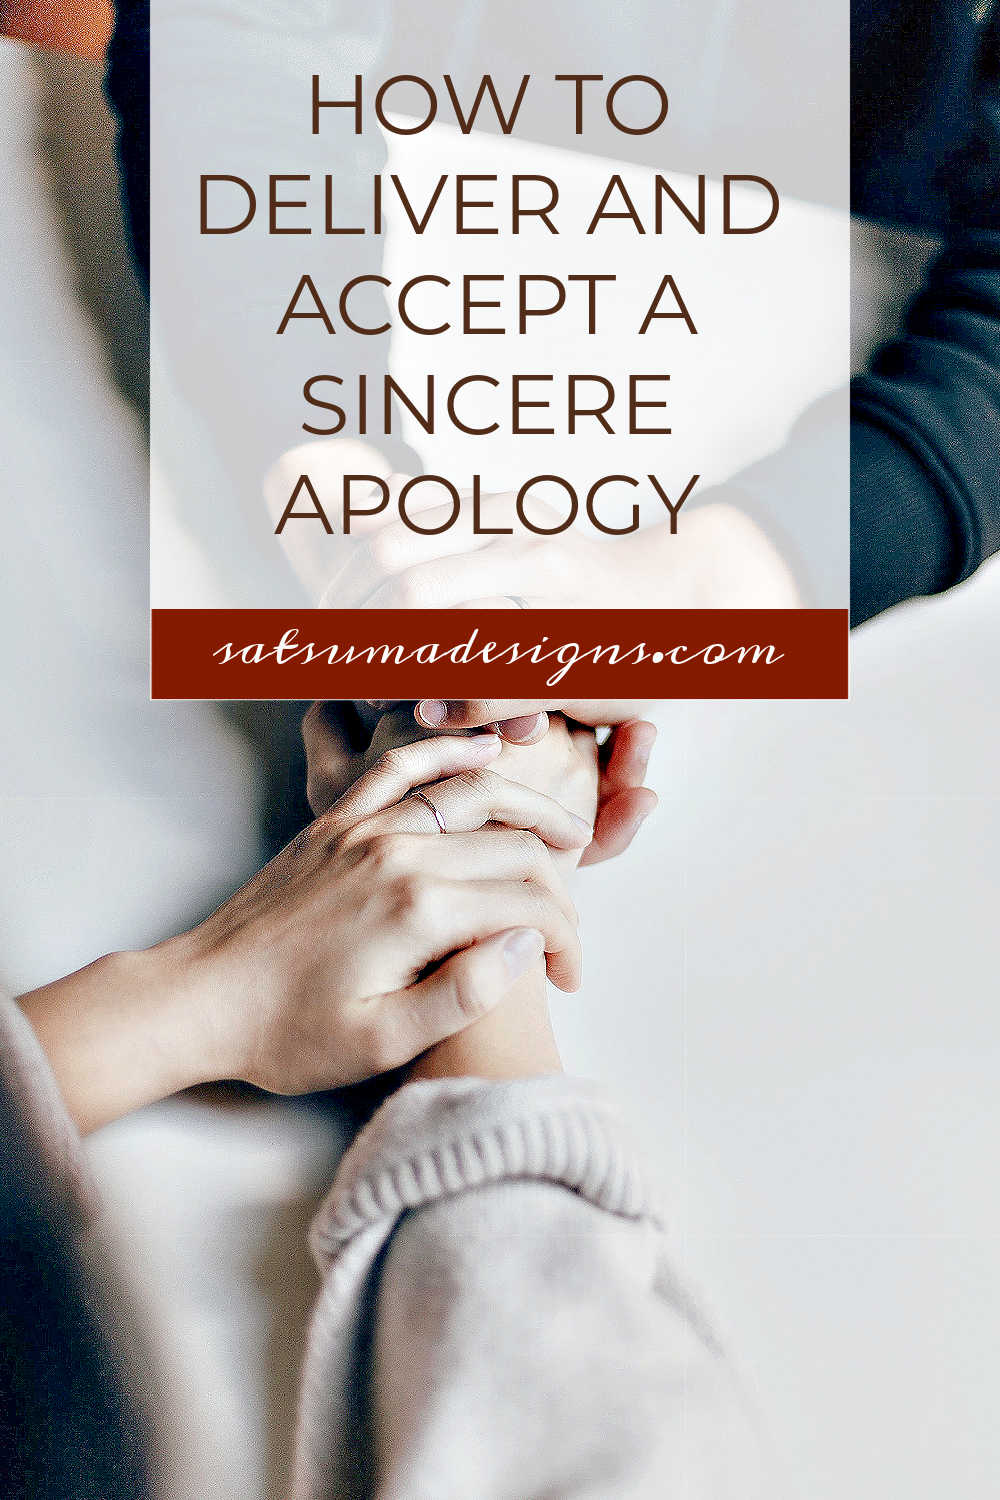 How to deliver and accept a sincere apology. Sadly, relationship struggles are a part of life, but we don't have to hold onto the pain when we can accept a sincere and thoughtful apology. Discover how to make an apology that will begin to heal relationships. #relationships #etiquette #businessskills #lifeskills #partnership